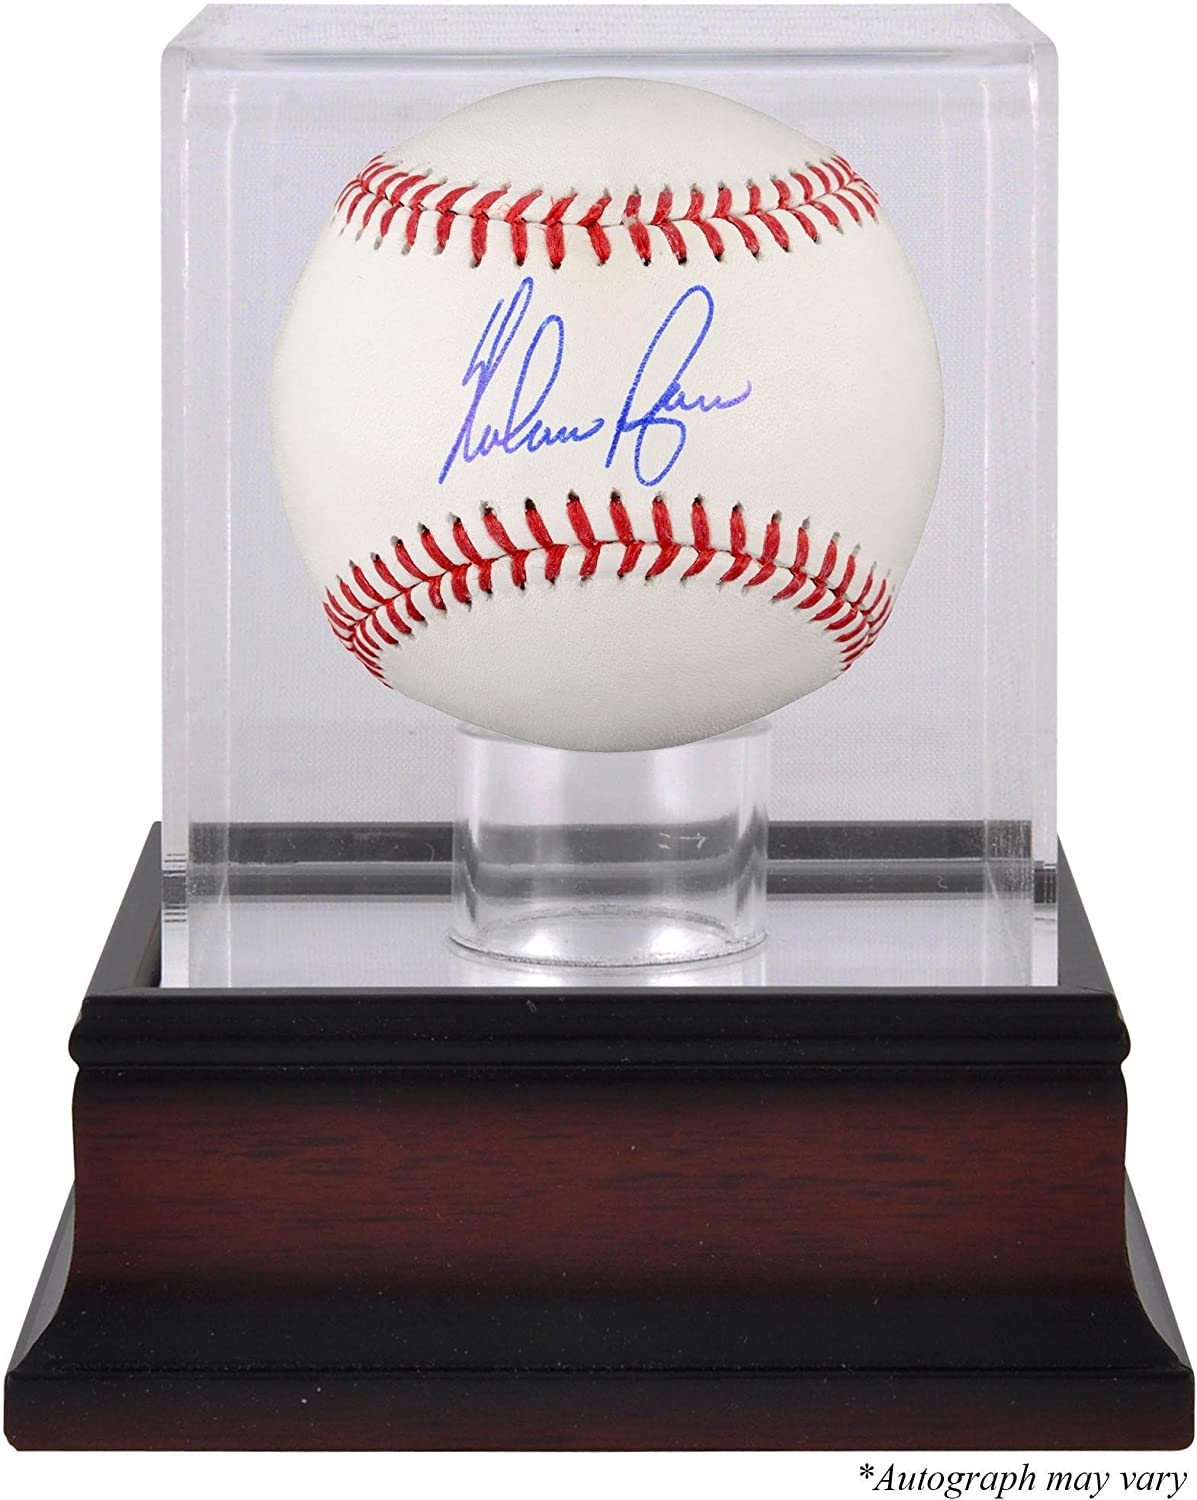 Nolan Ryan Texas Rangers Autographed Black Leather Baseball Fanatics Authentic Certified Autographed Baseballs